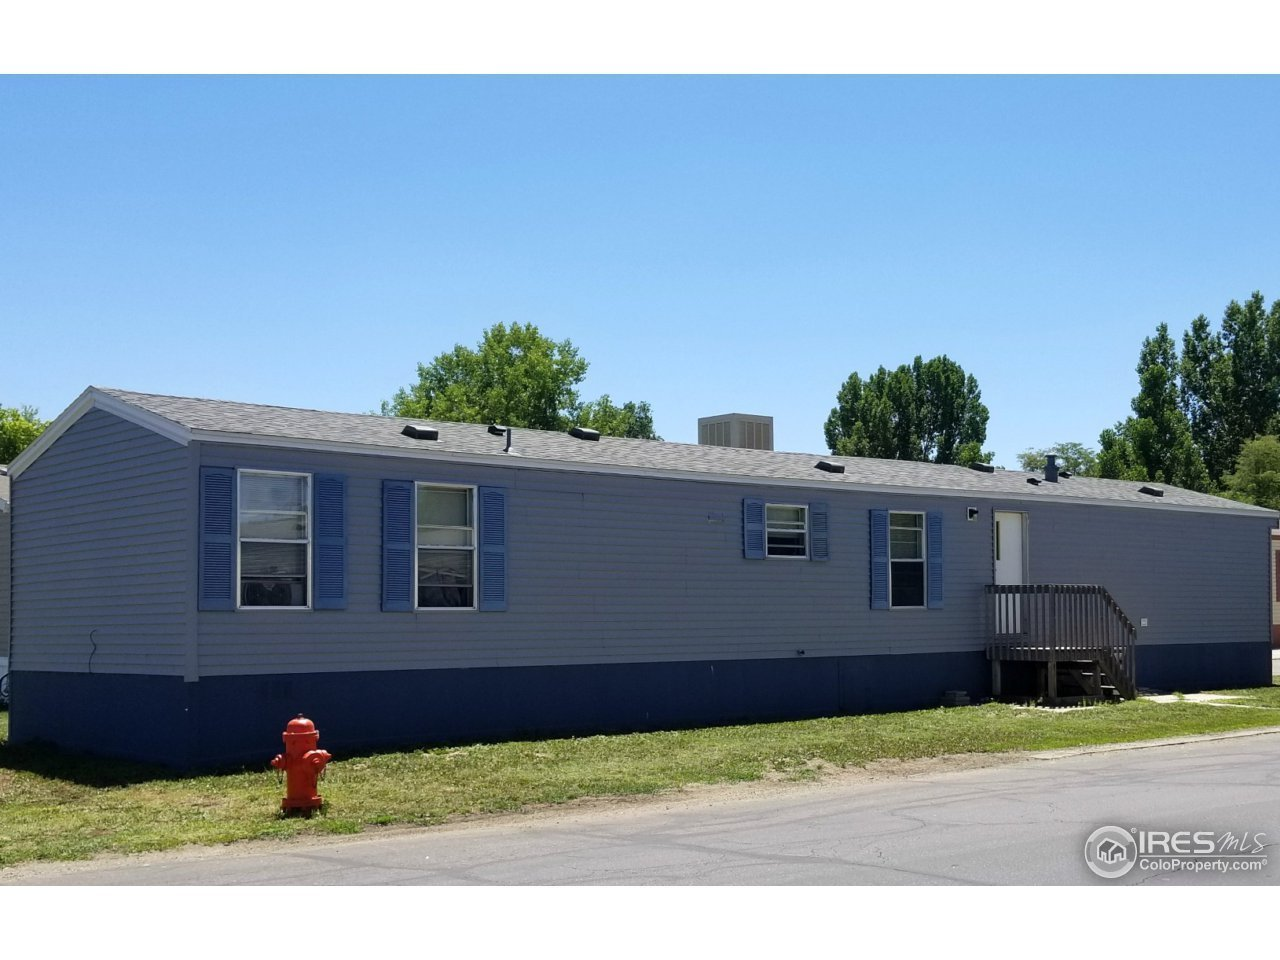 200 n 35th ave #93, greeley, co 80634   mls# 3479   redfin